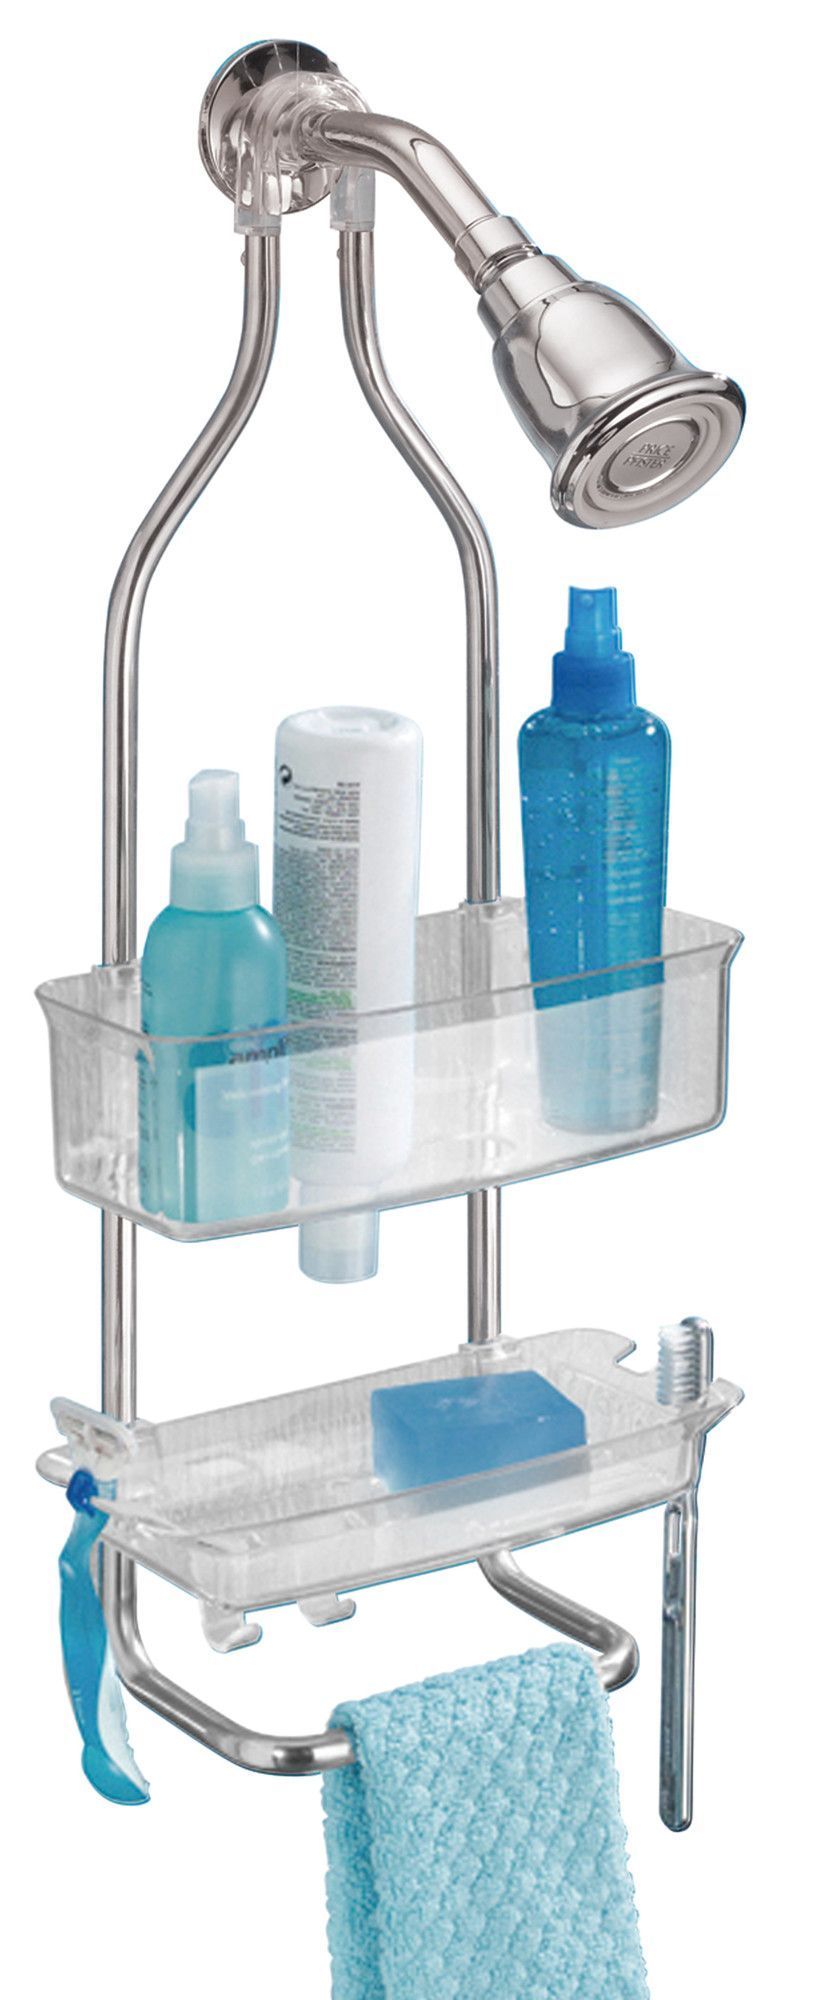 Shower Caddy | Products | Pinterest | Dorm room and Dorm